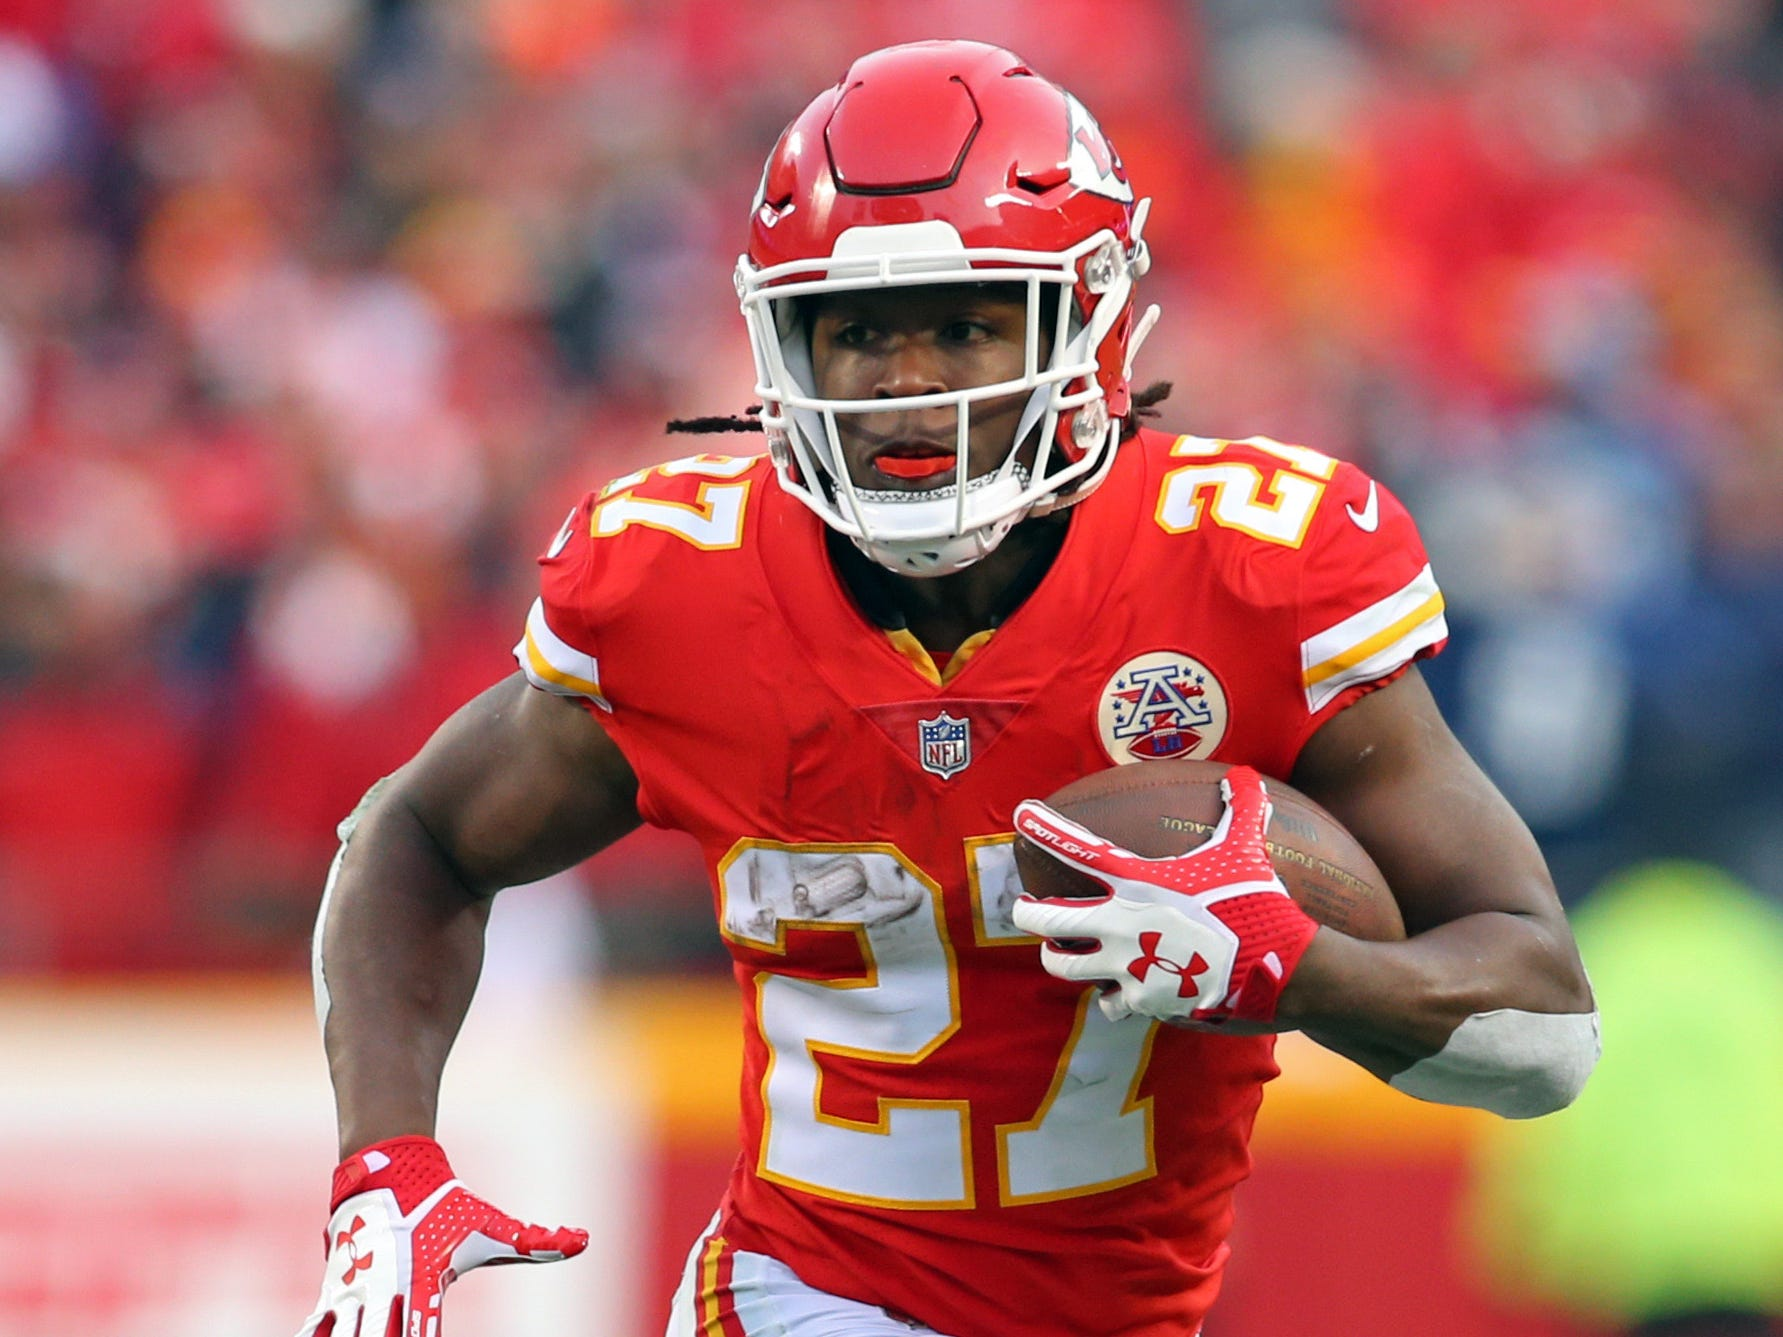 No. 17: Kareem Hunt, RB, Chiefs